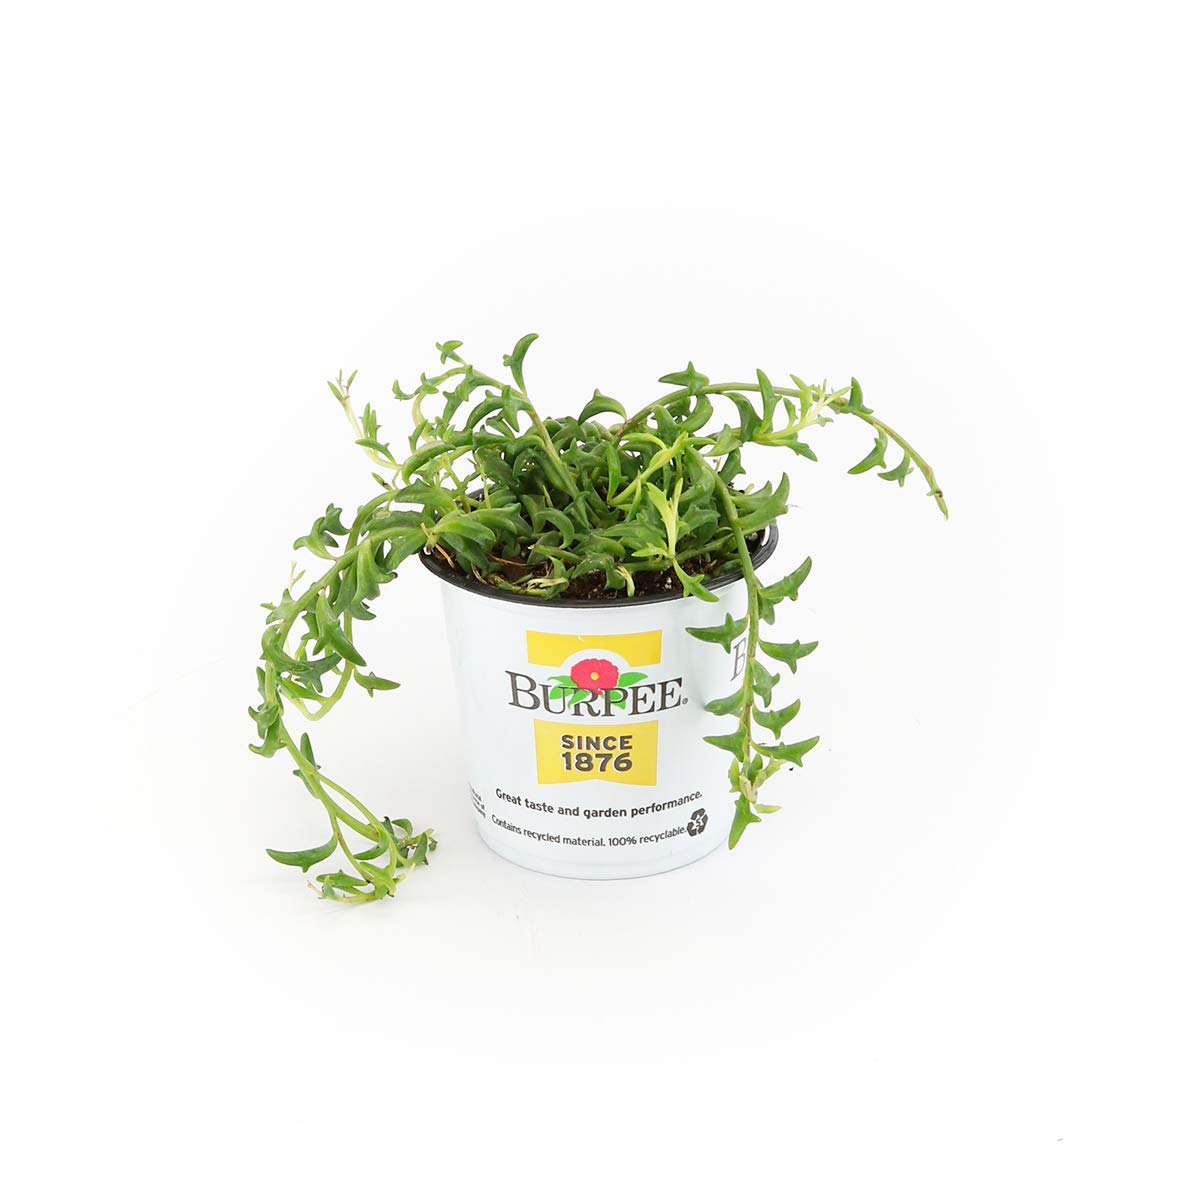 Burpee String of Dolphins Succulent Senecio | Bright Indirect Light | Live Easy Care Indoor House Plant, 4'' Pot by Burpee